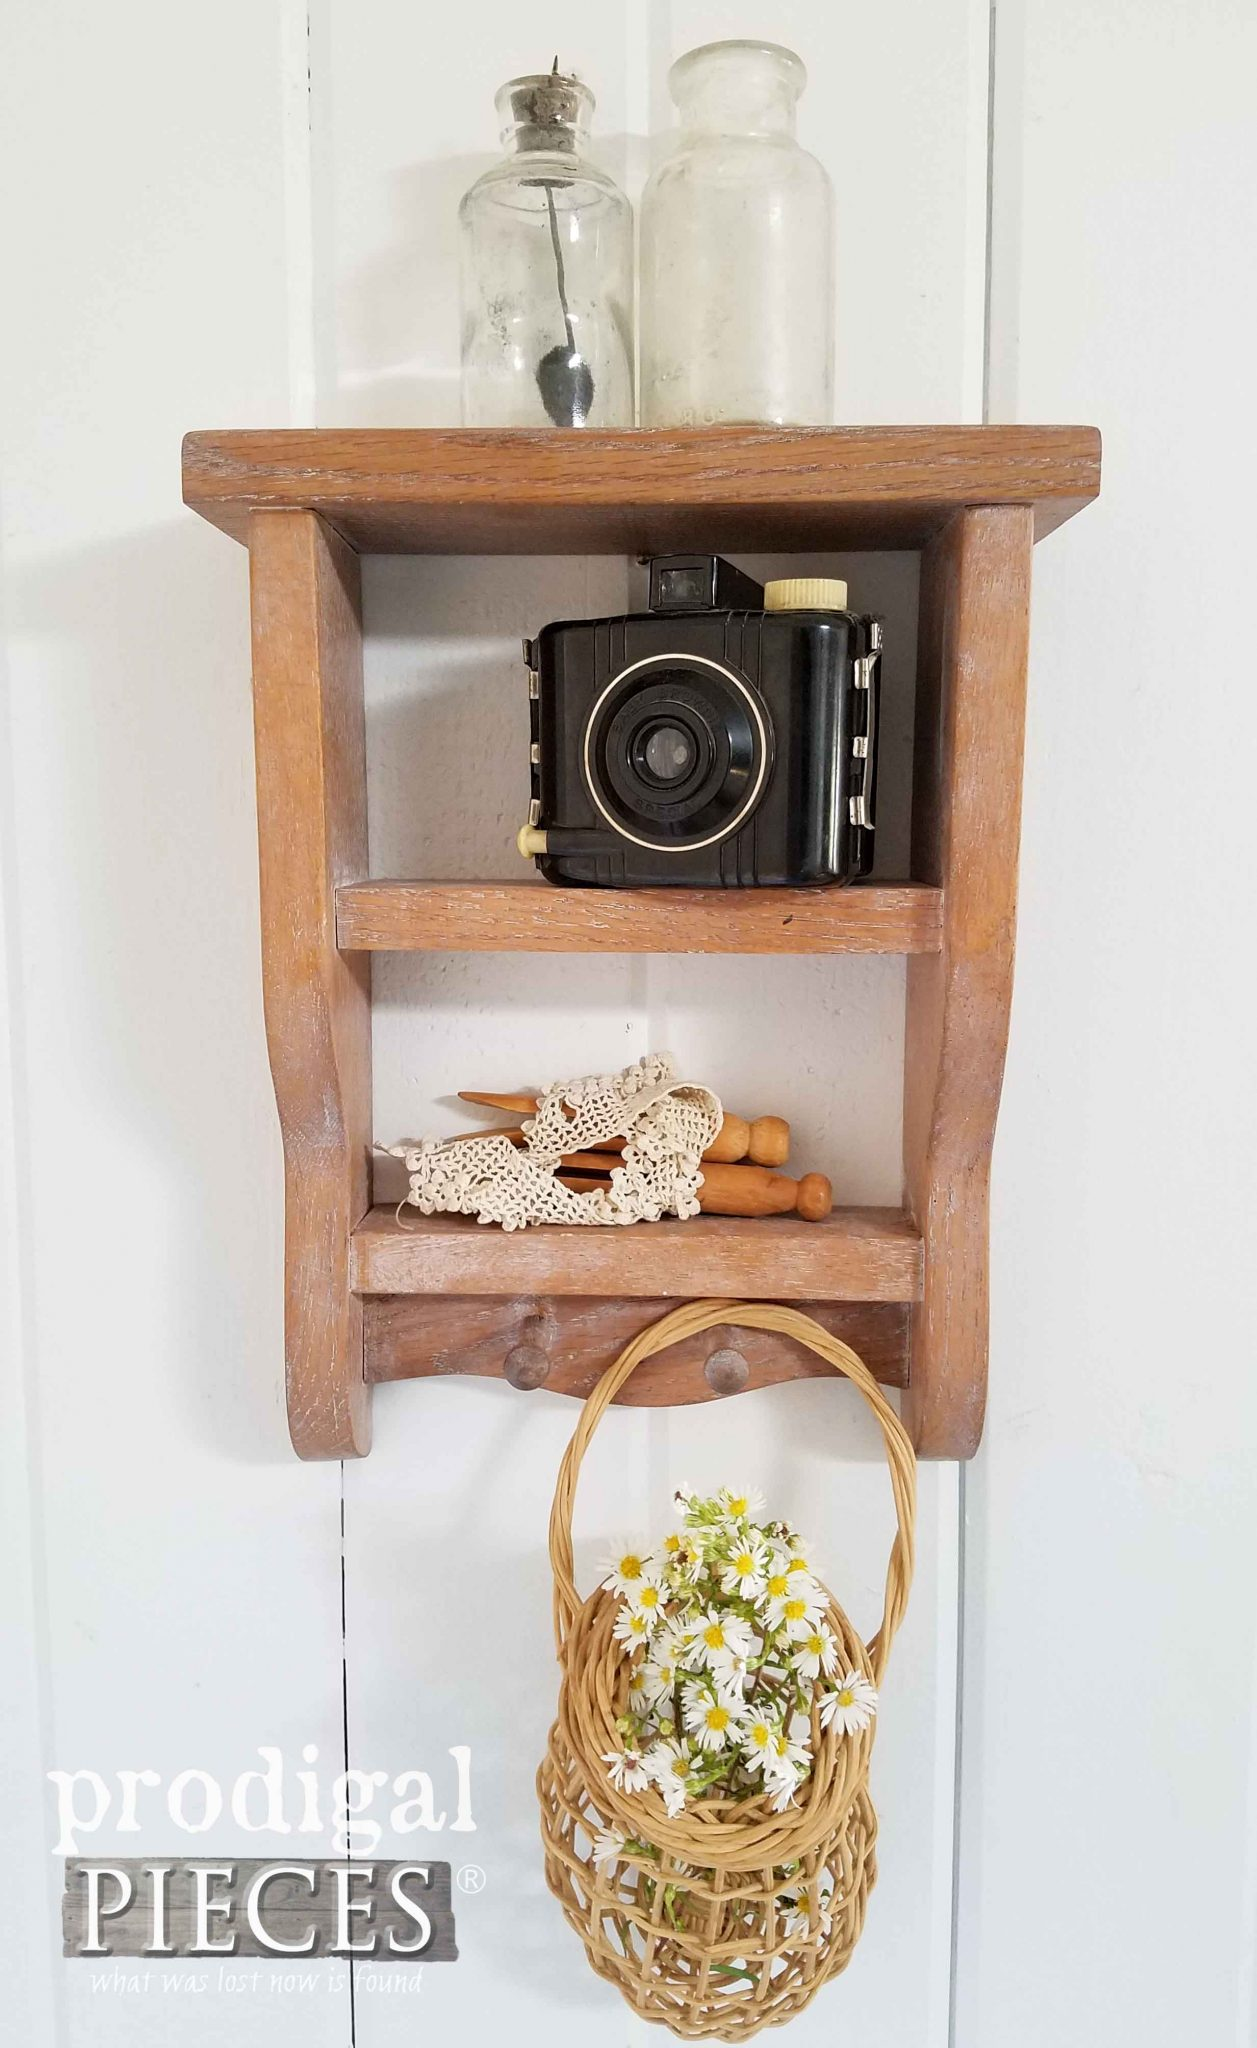 Farmhouse Oak knick Knack Shelf with Eclectic Vignette by Prodigal Pieces | prodigalpieces.com